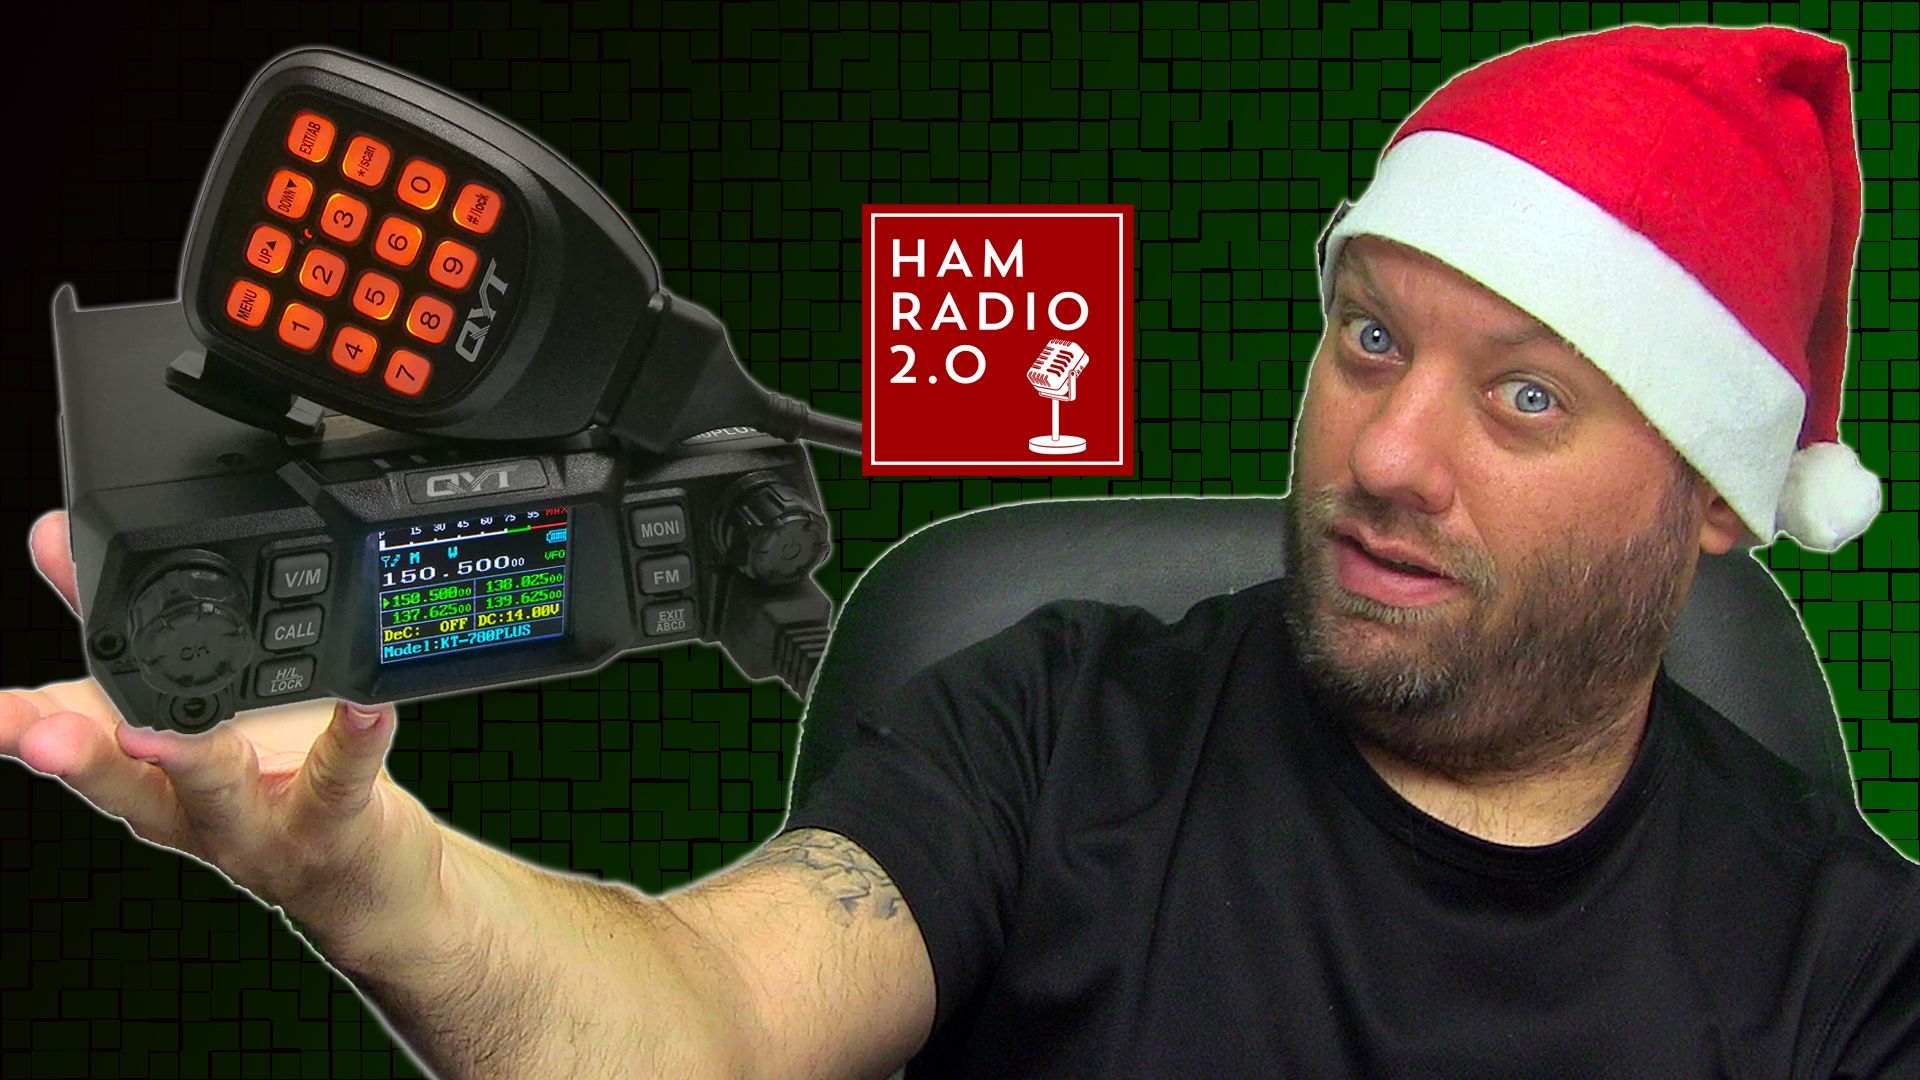 Episode 506: QYT KT-780 Plus 100 Watts 2 meter Mobile Radio Review and Demo